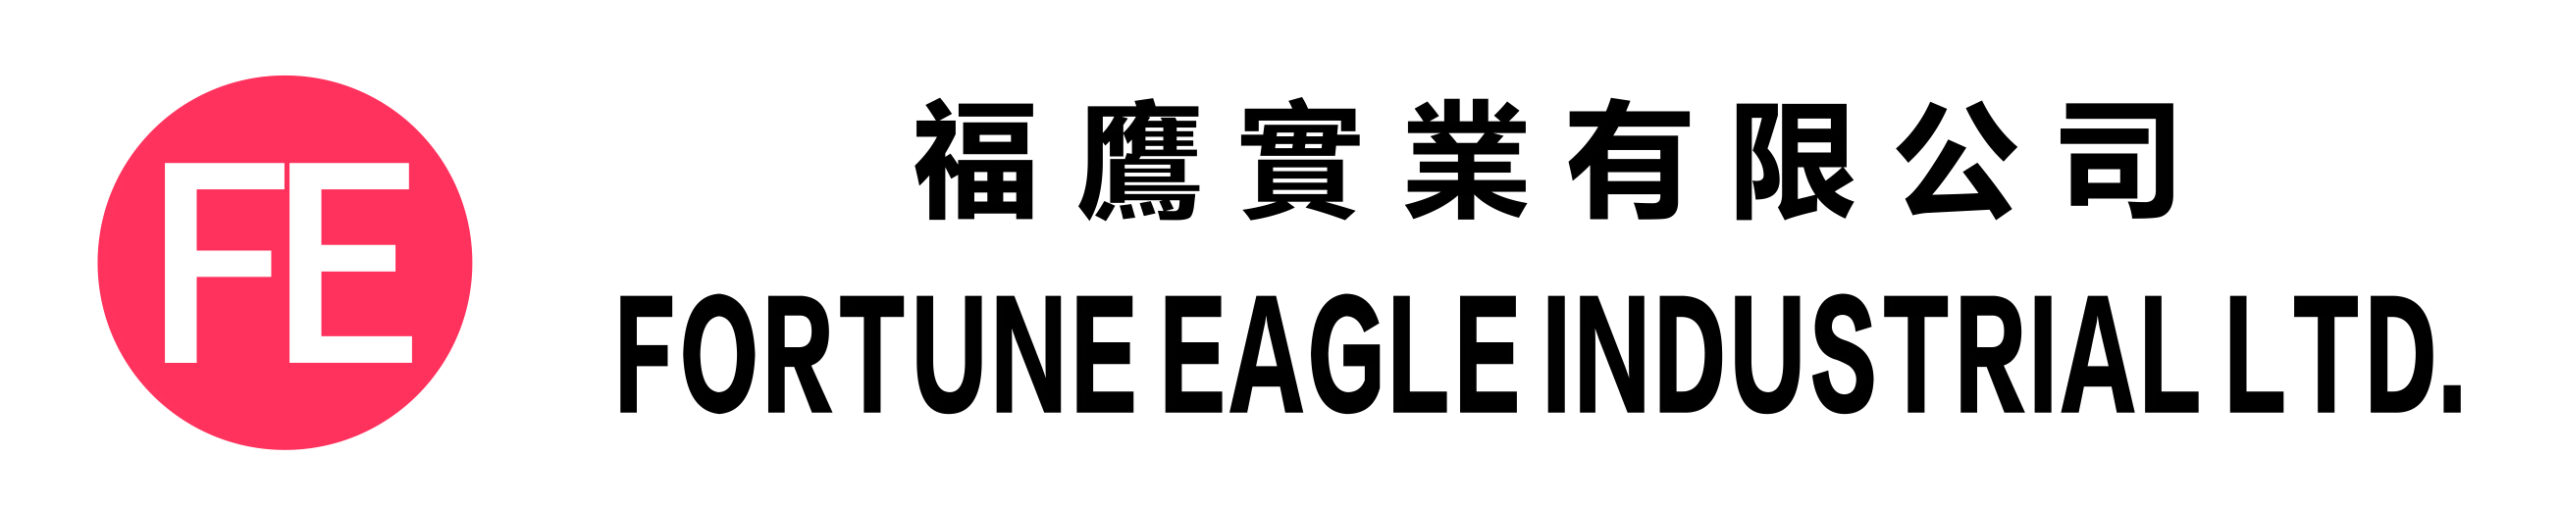 Fortune Eagle Industrial Limited